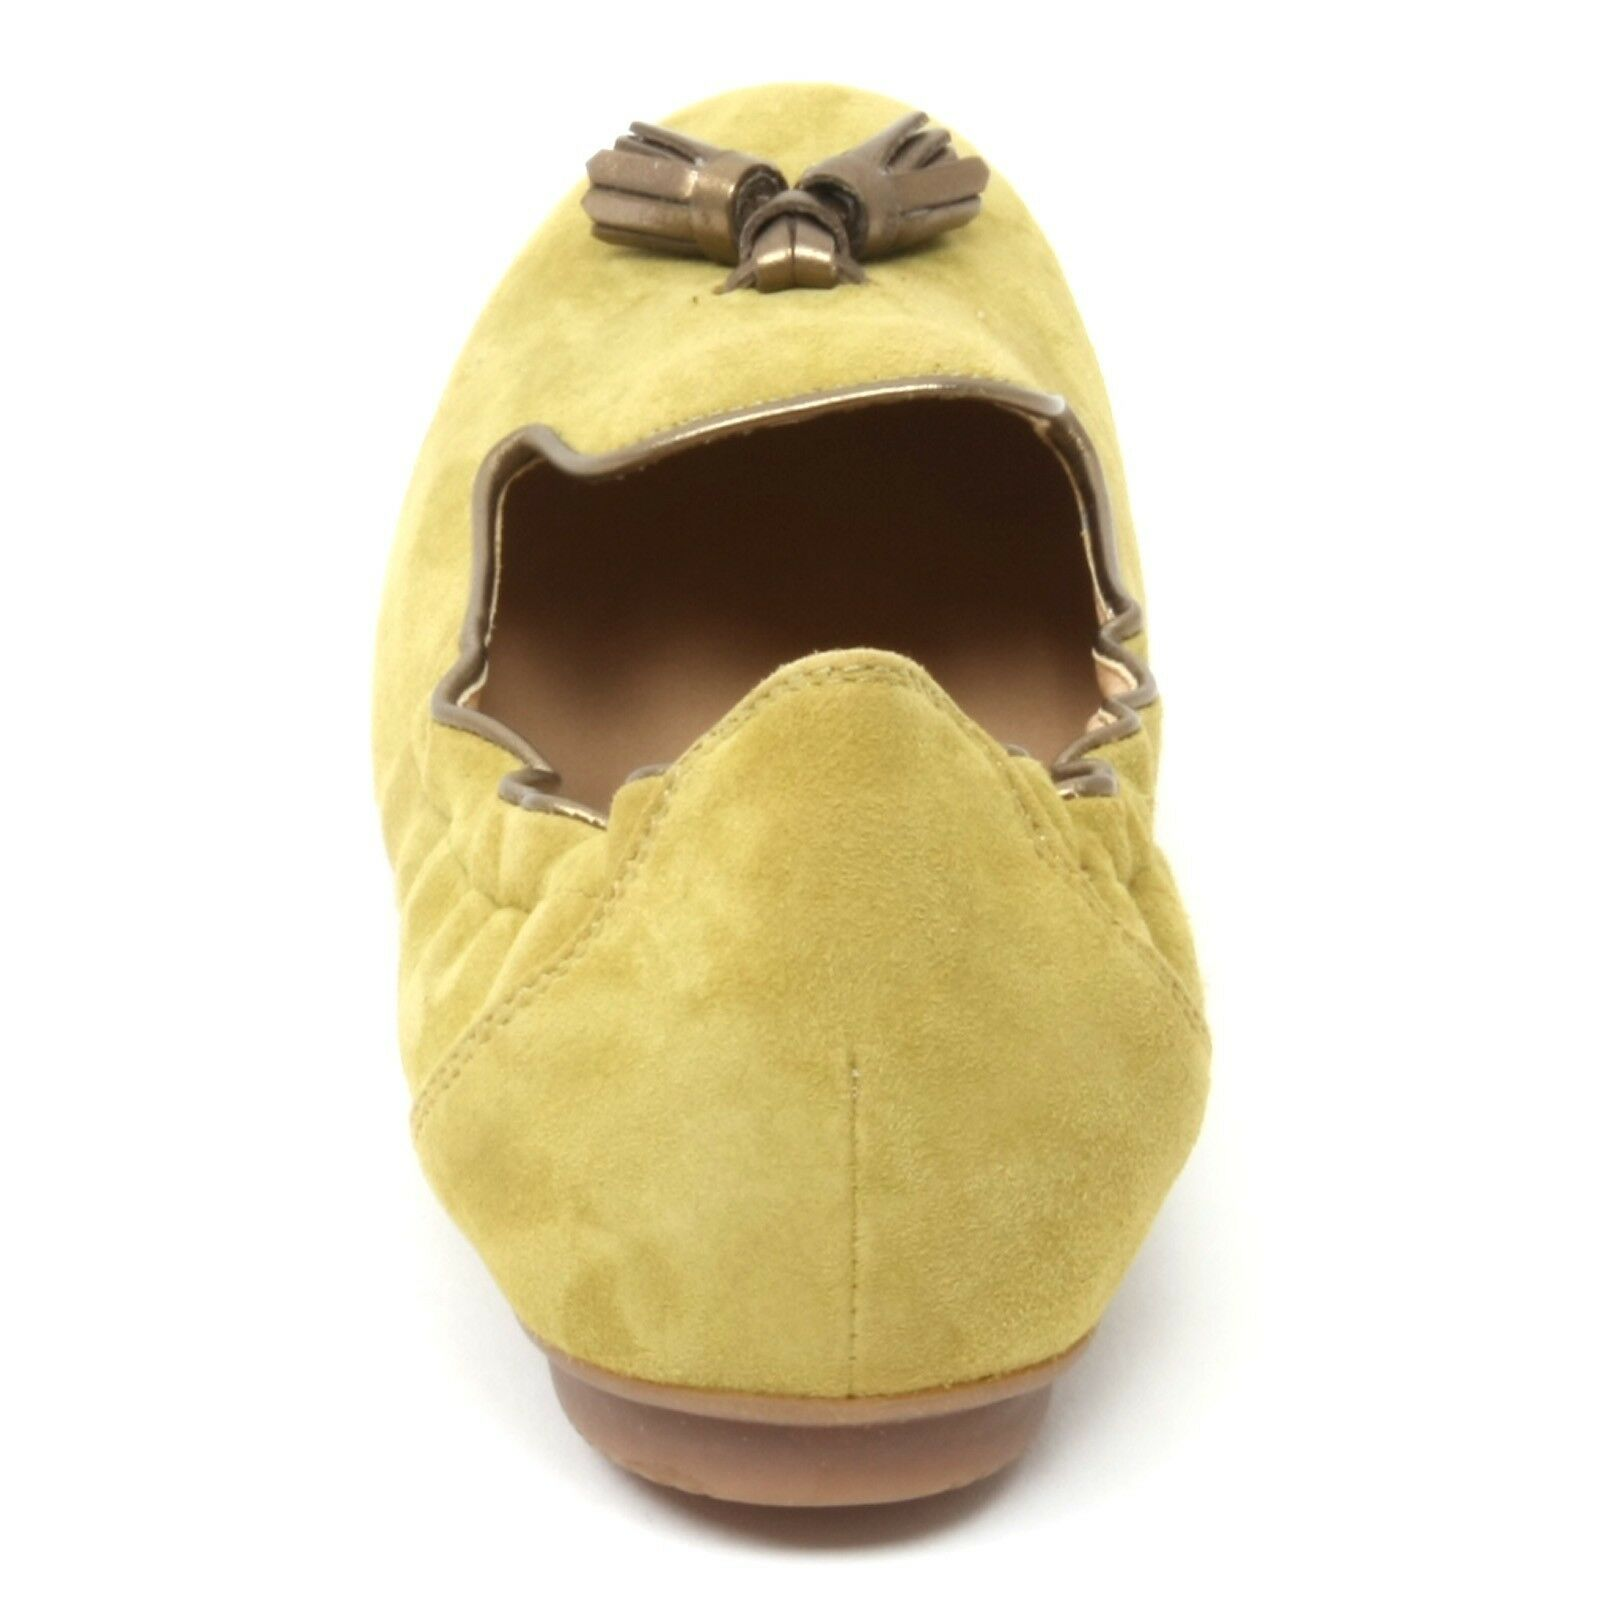 B4782 mocassino mocassino mocassino mujer Hogan Wrap 144 Pantofola verde oliva loafer zapatos Woman 5fff92